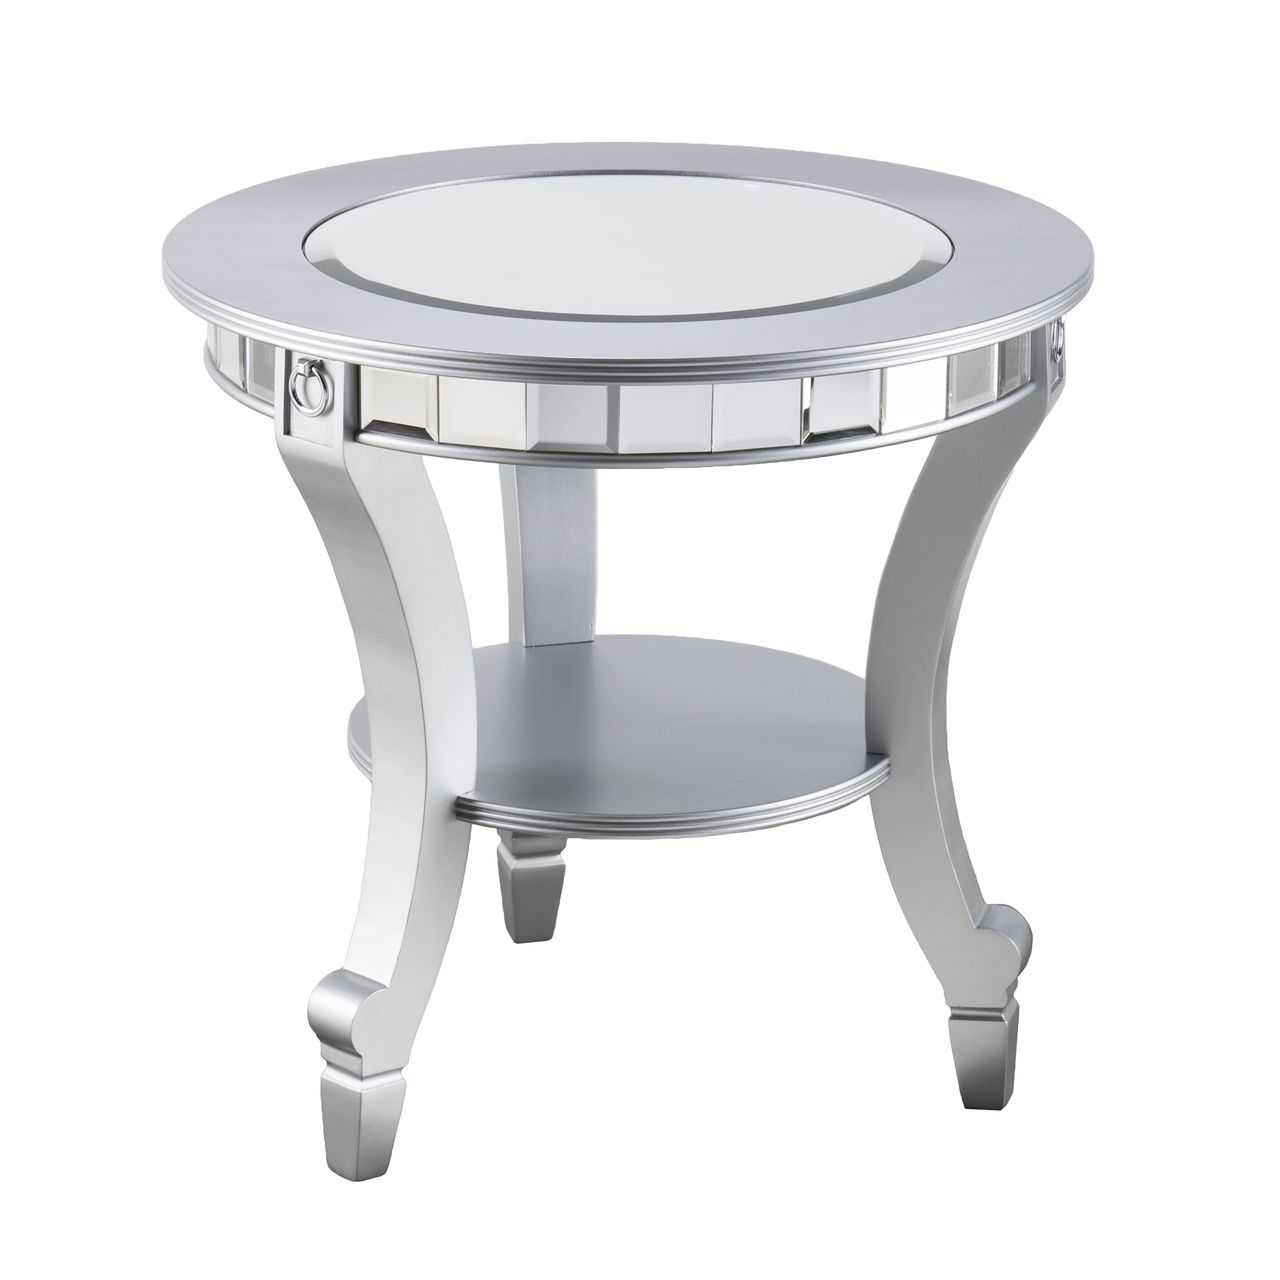 SEI Lindsay Glam Mirrored Round End Table in Matte Silver